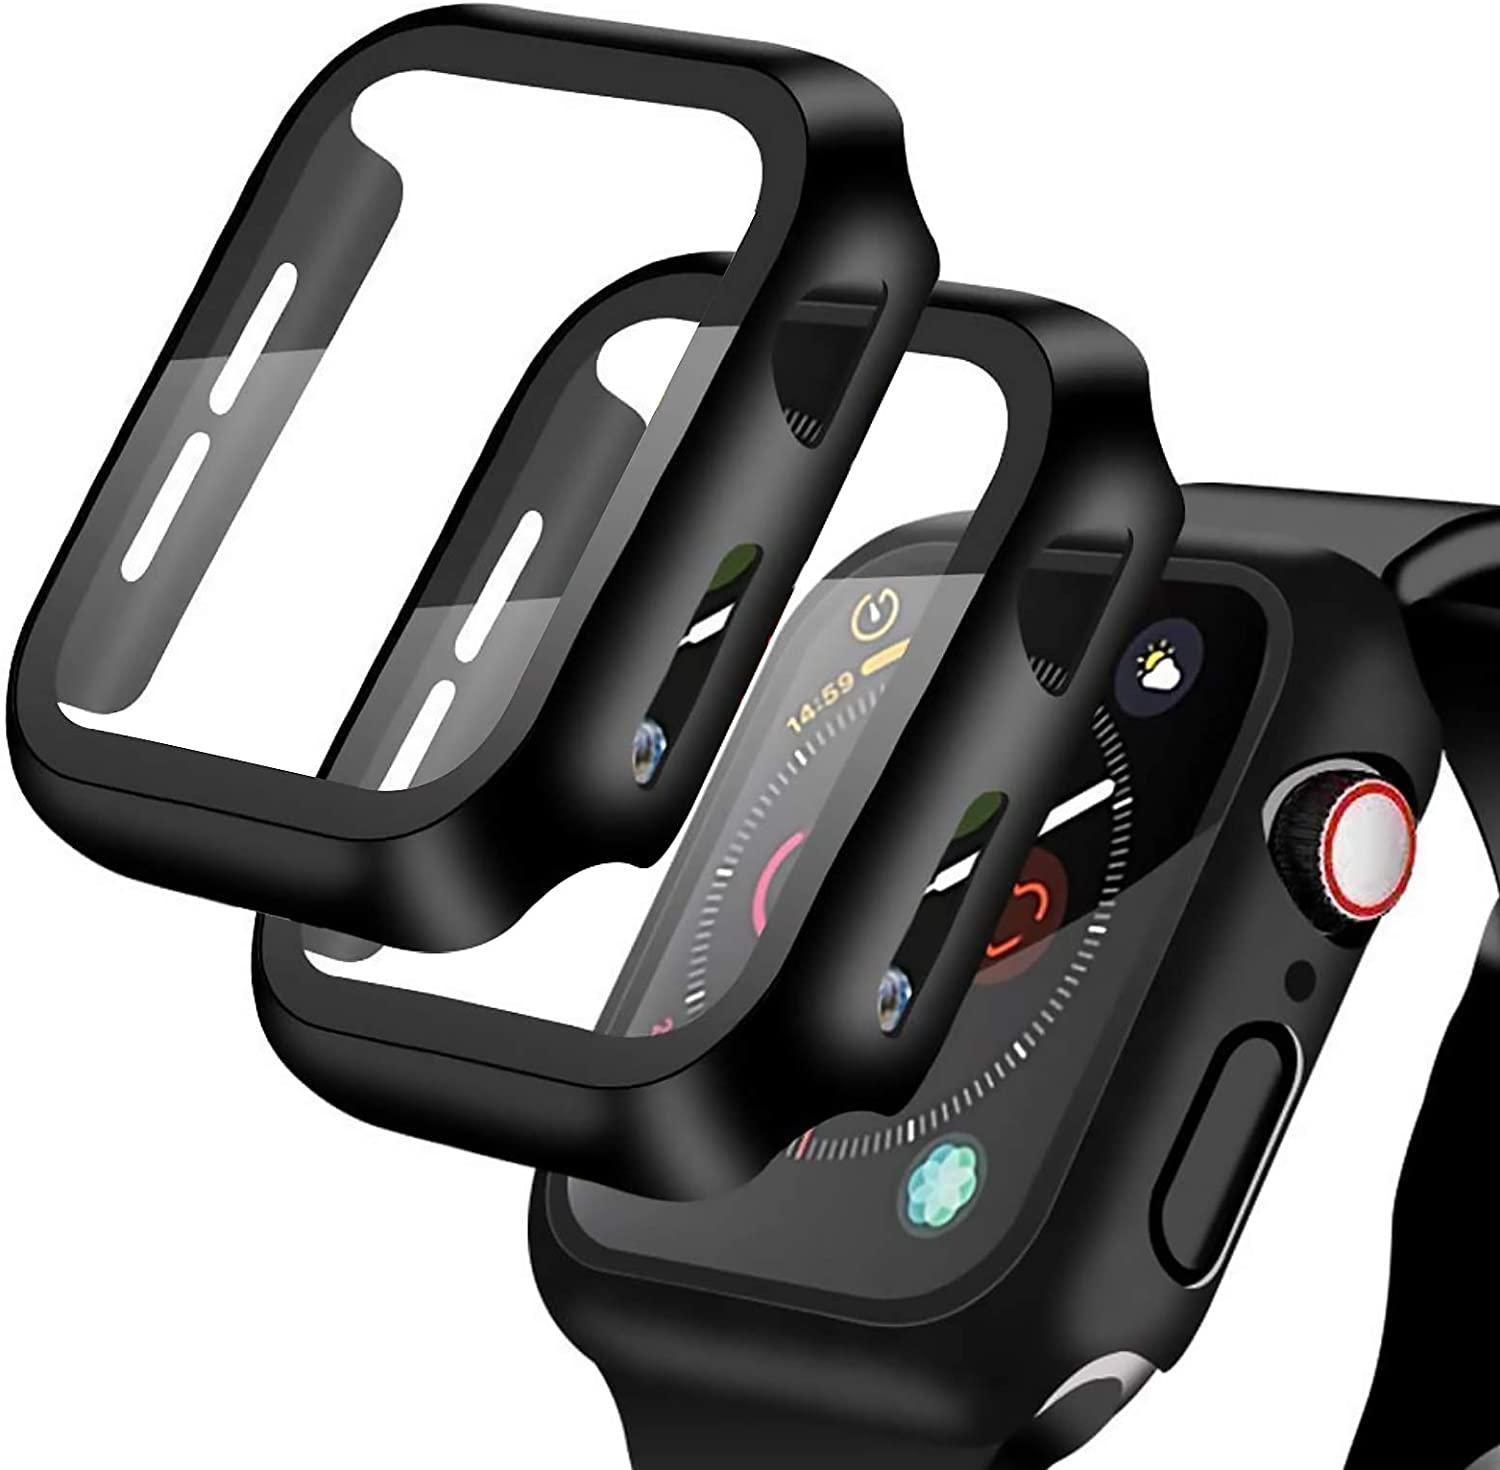 [2 Pack] Compatible for Apple Watch 44mm Series 6 / SE/ Series 5 /Series 4 Tempered Glass Screen Protector with Black Bumper Case, YMHML Full Coverage Easy Installation Bubble-Free Cover for iWatch Accessories